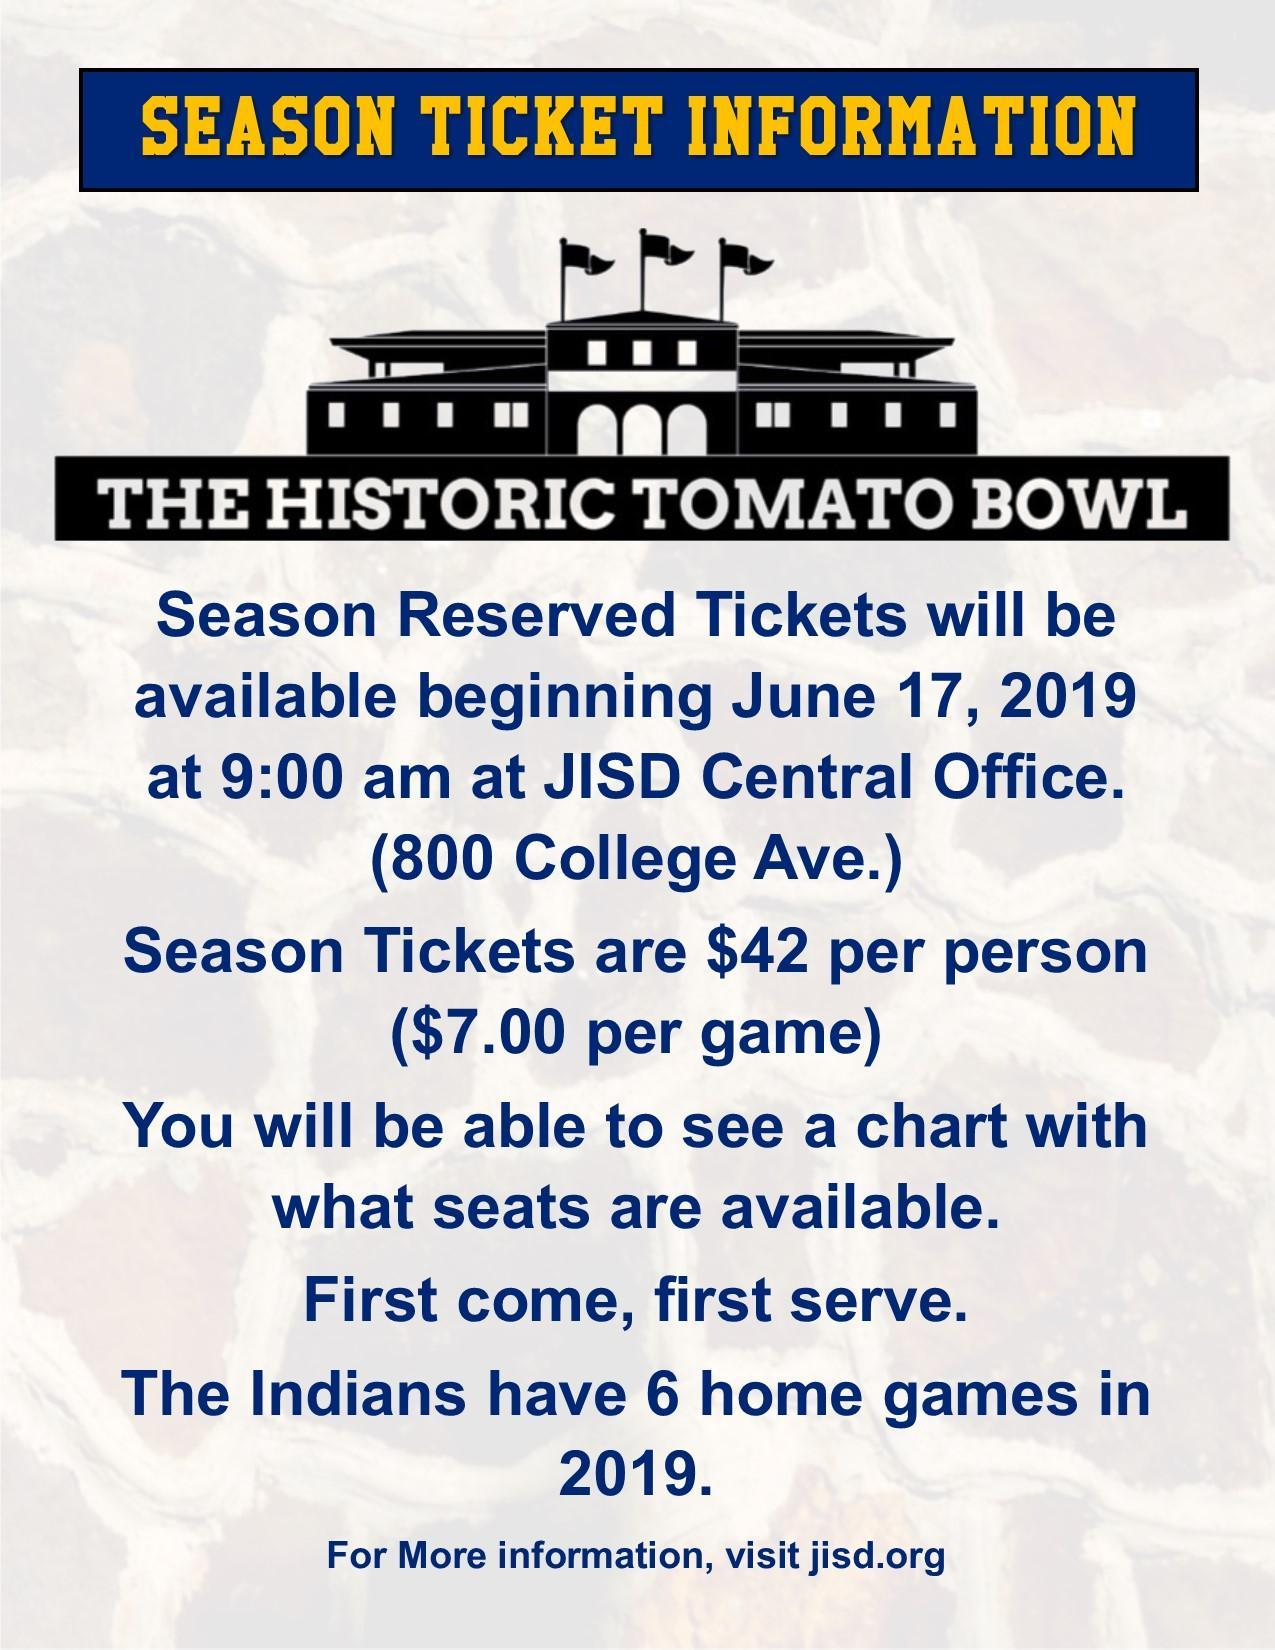 flyer with season ticket information about the Tomato Bowl stadium